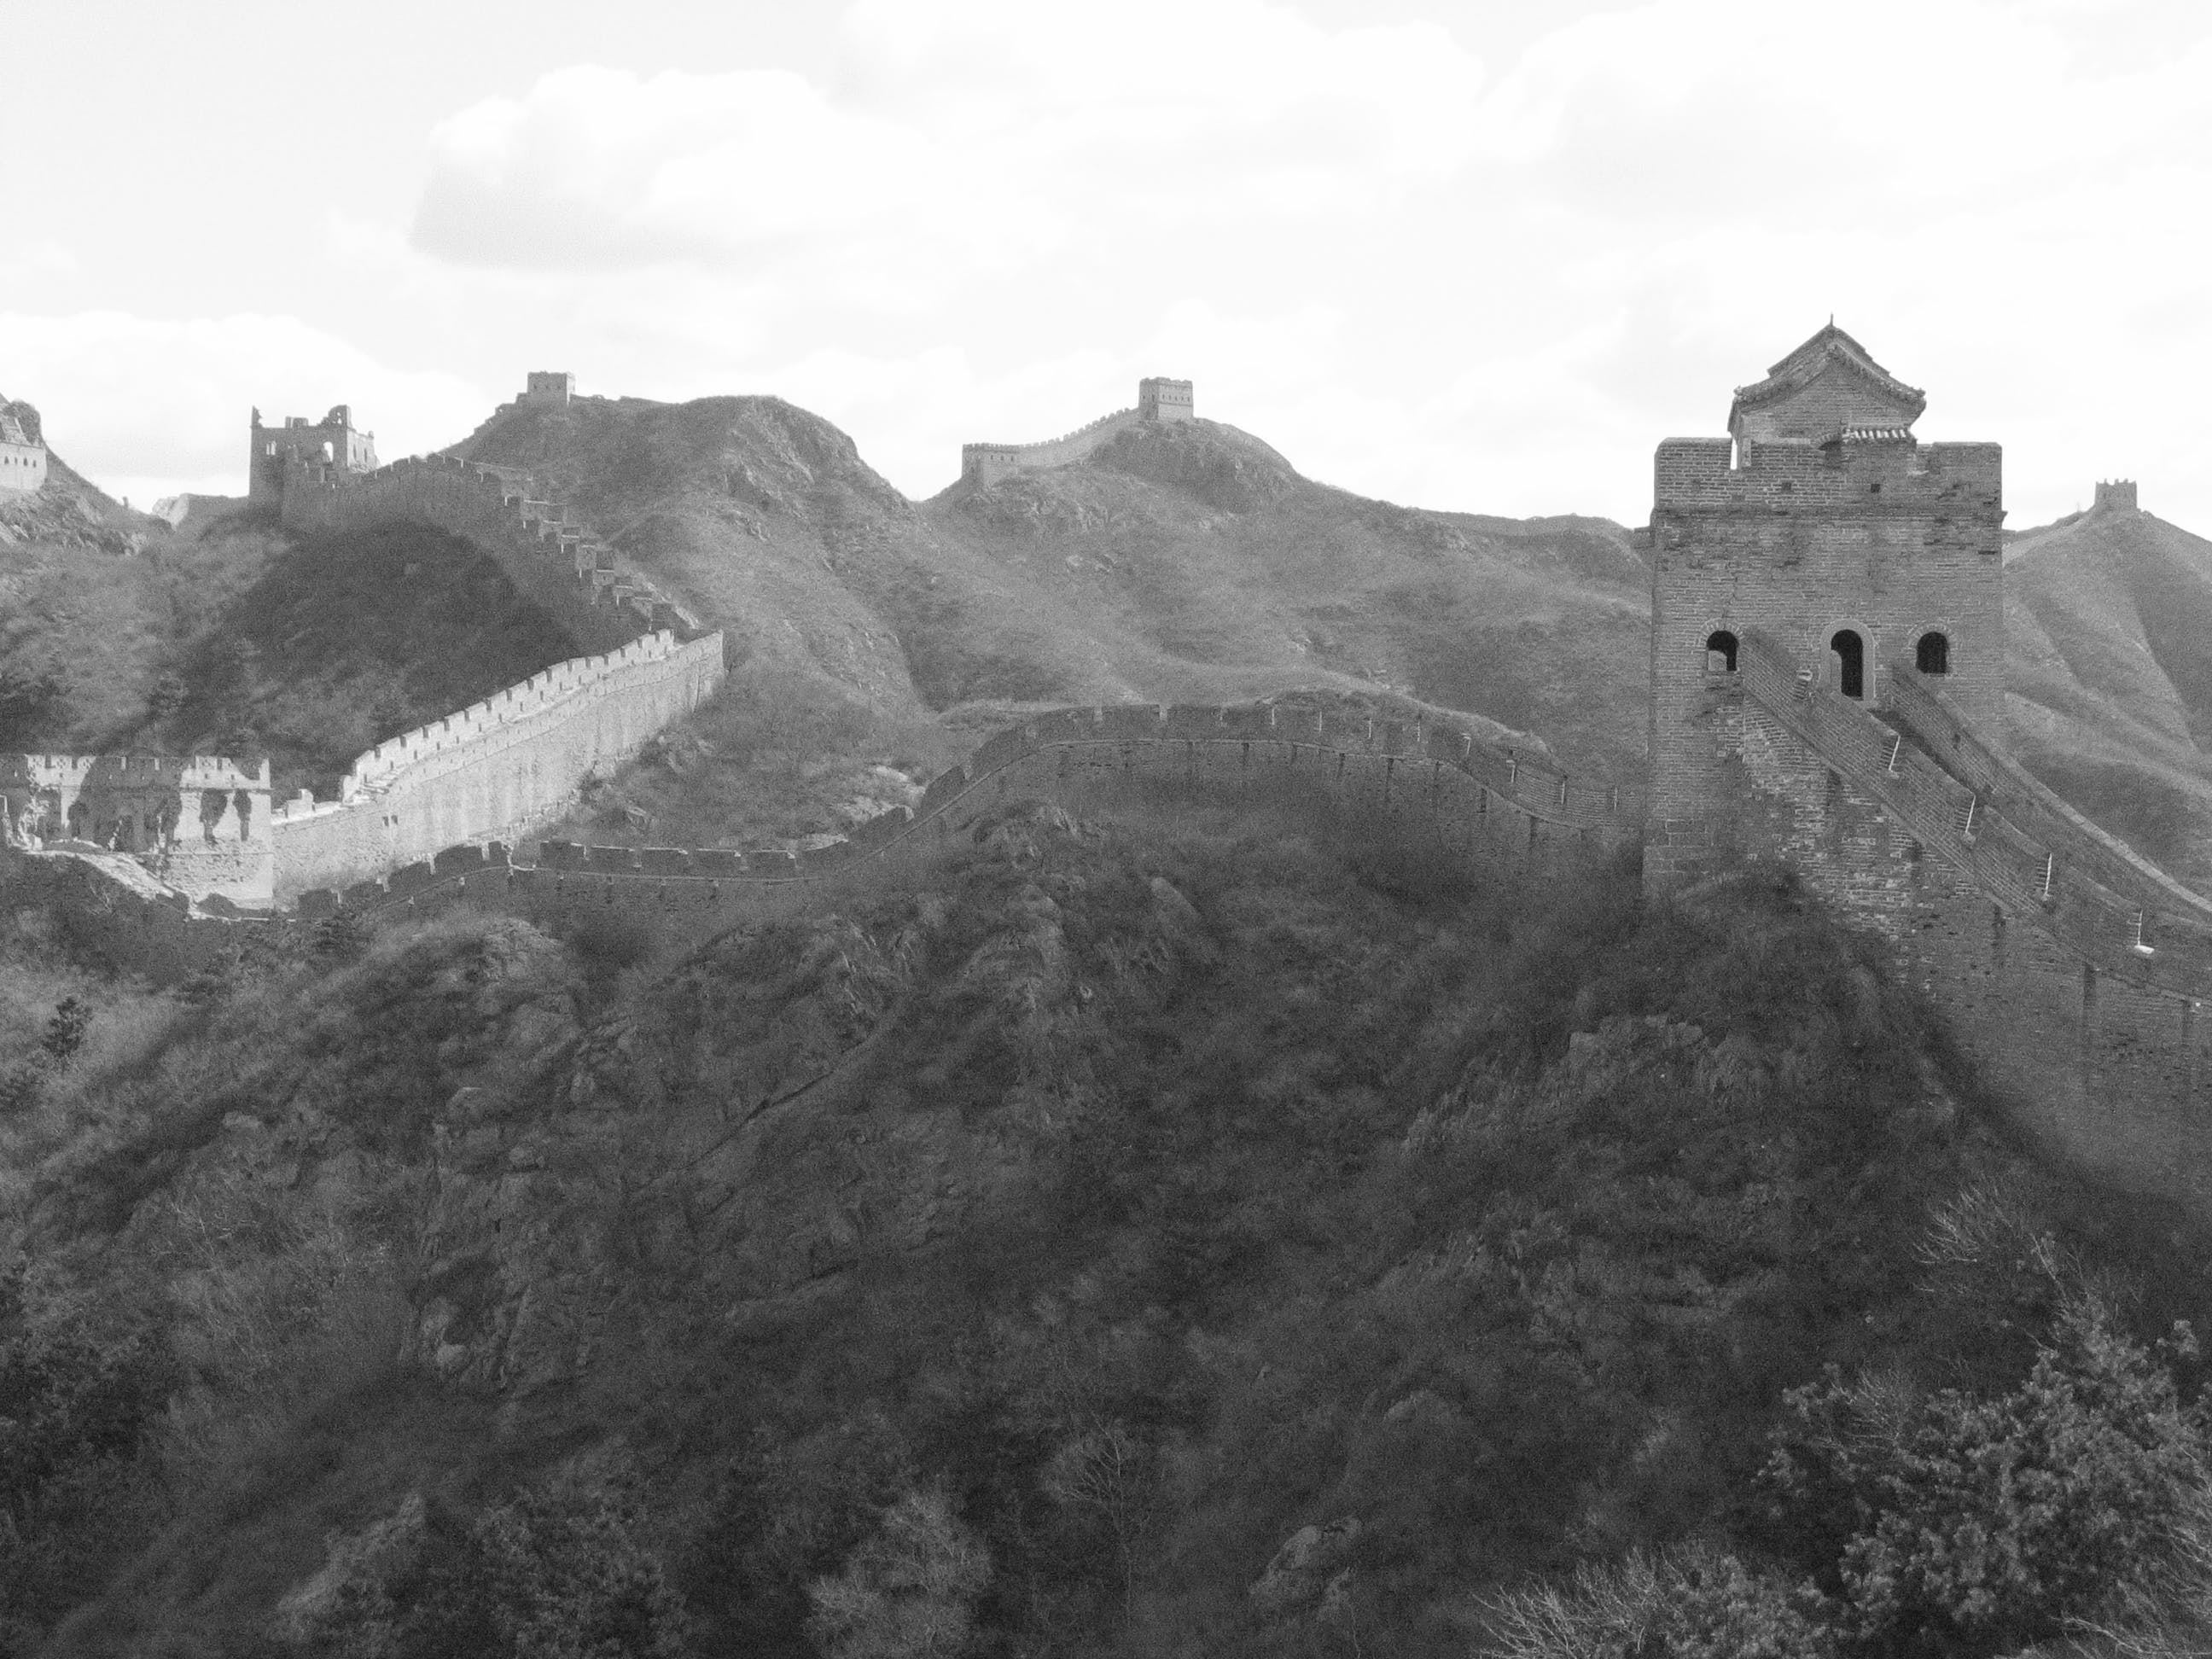 Free stock photo of The Great Wall of China